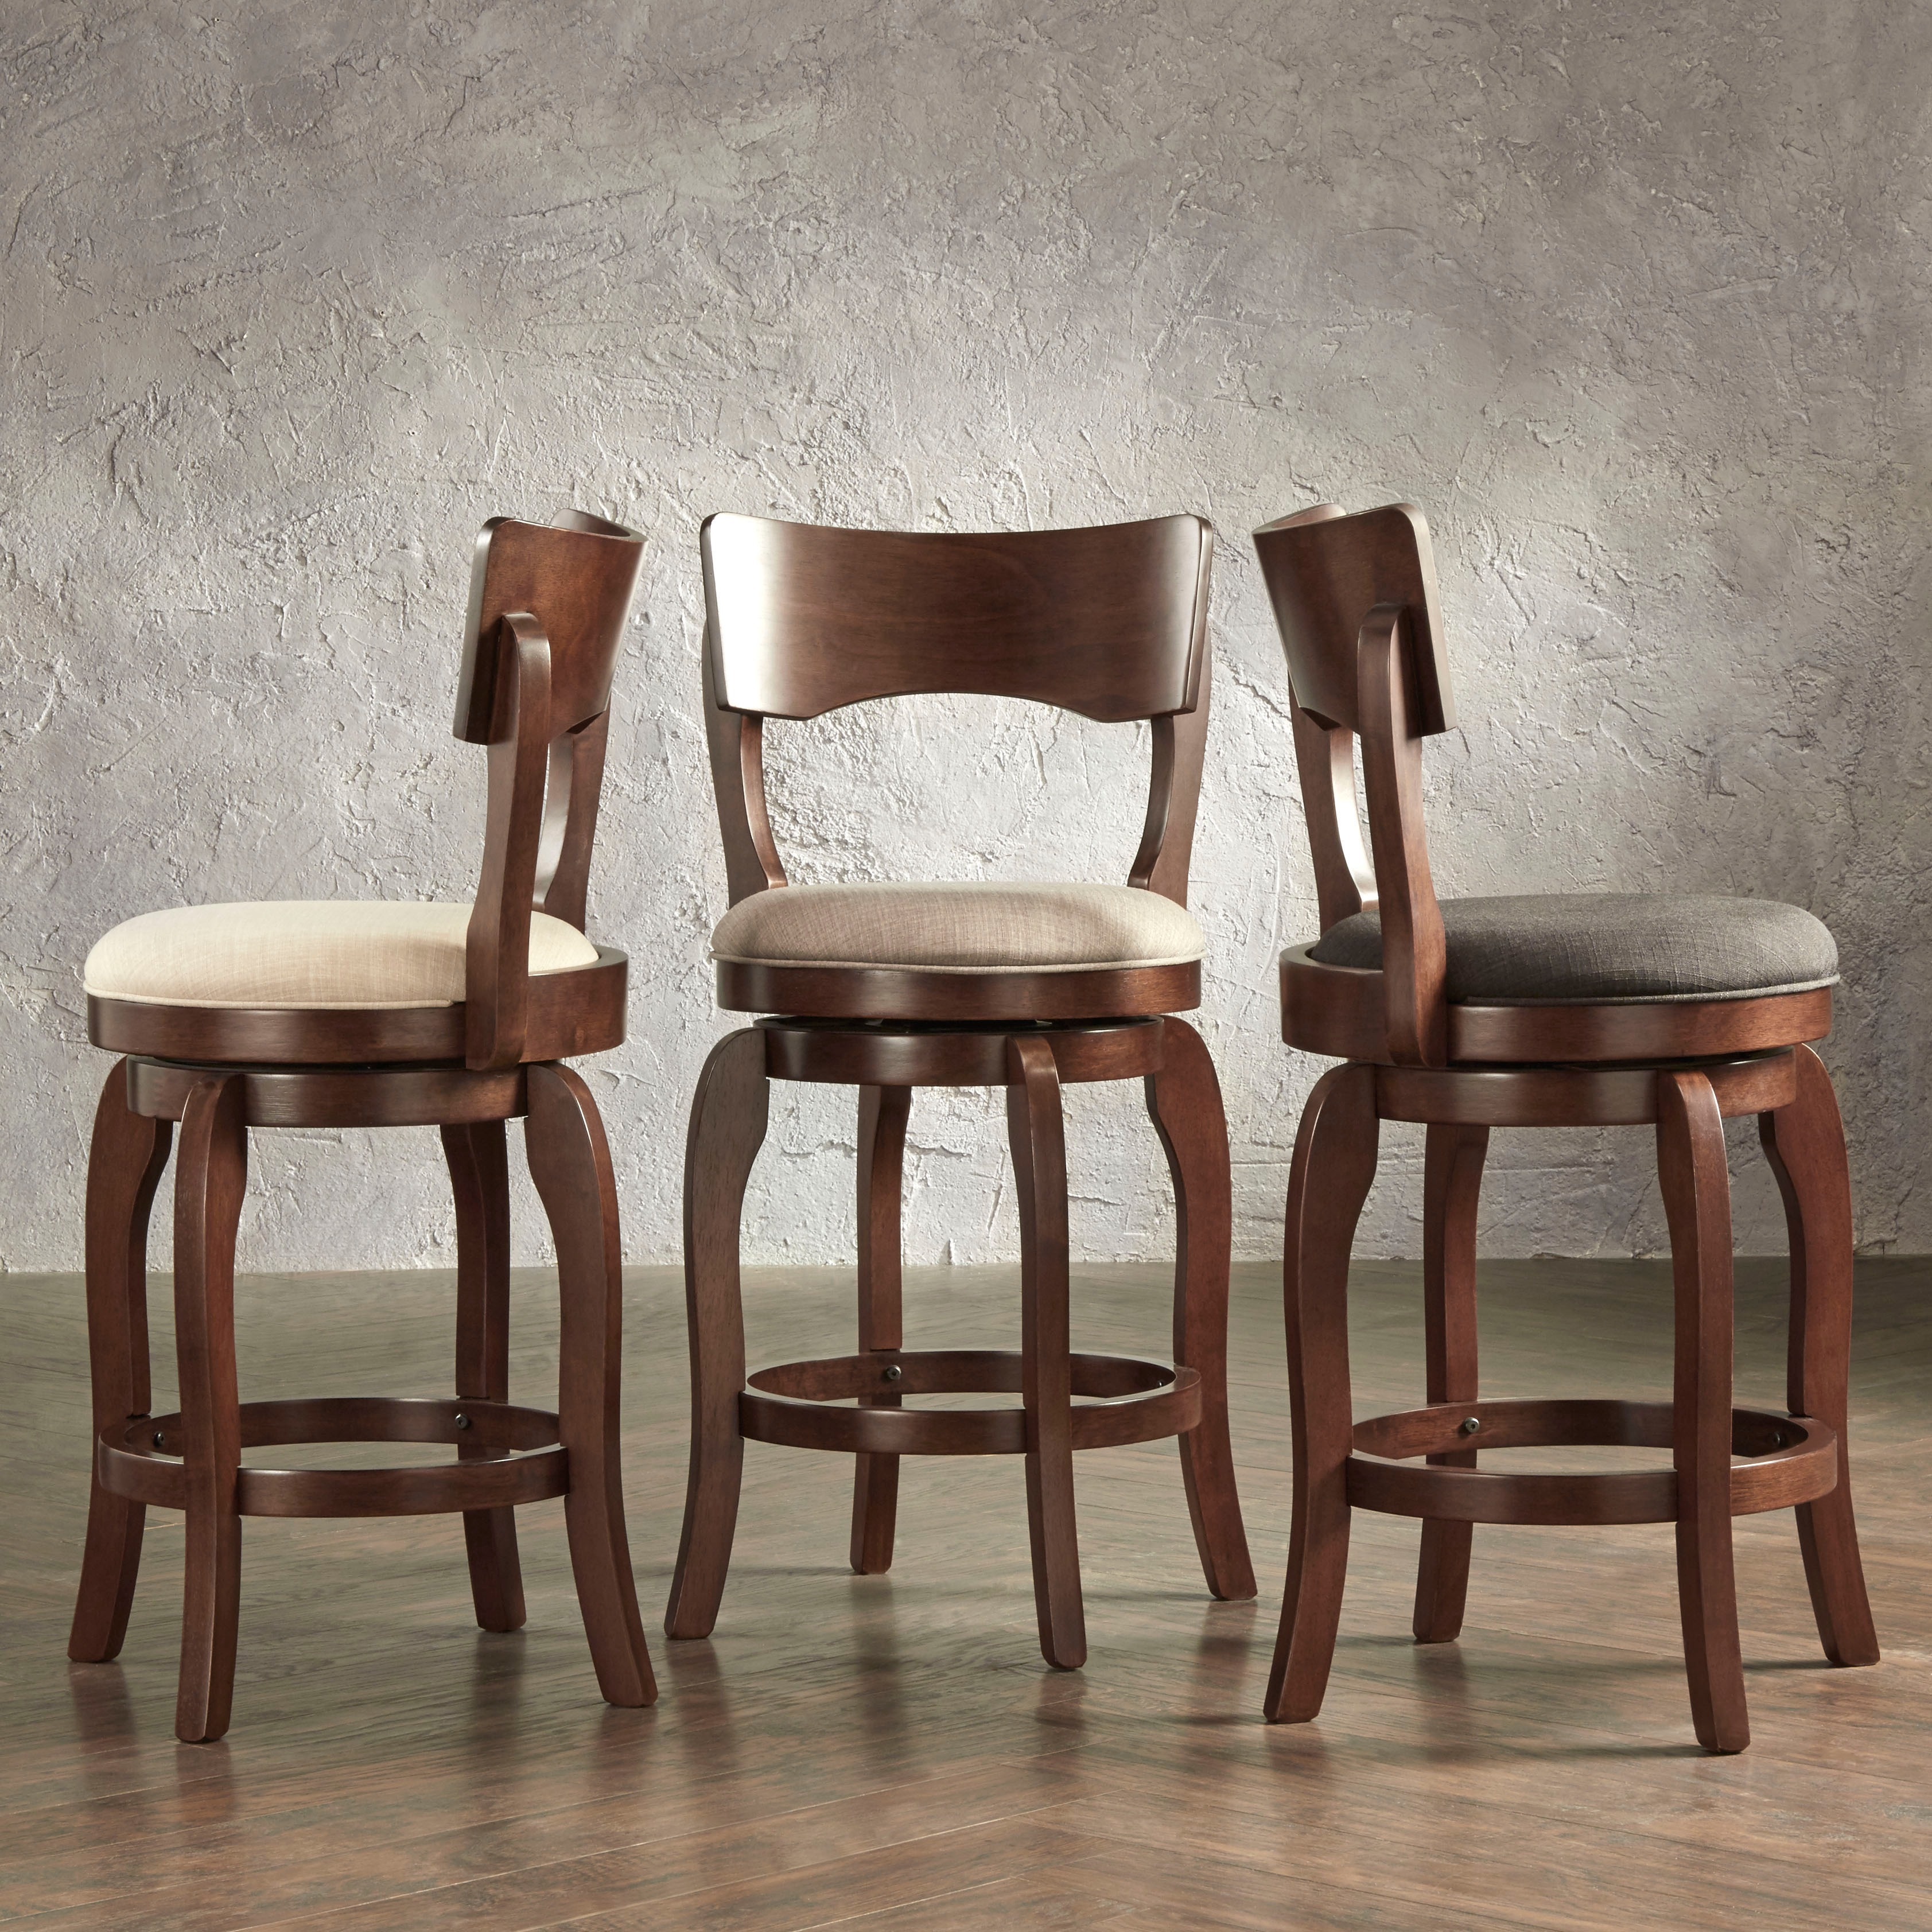 Lyla Swivel 24-inch Brown Oak Counter Height Linen Barstool by iNSPIRE Q  Classic - Free Shipping Today - Overstock.com - 17088197